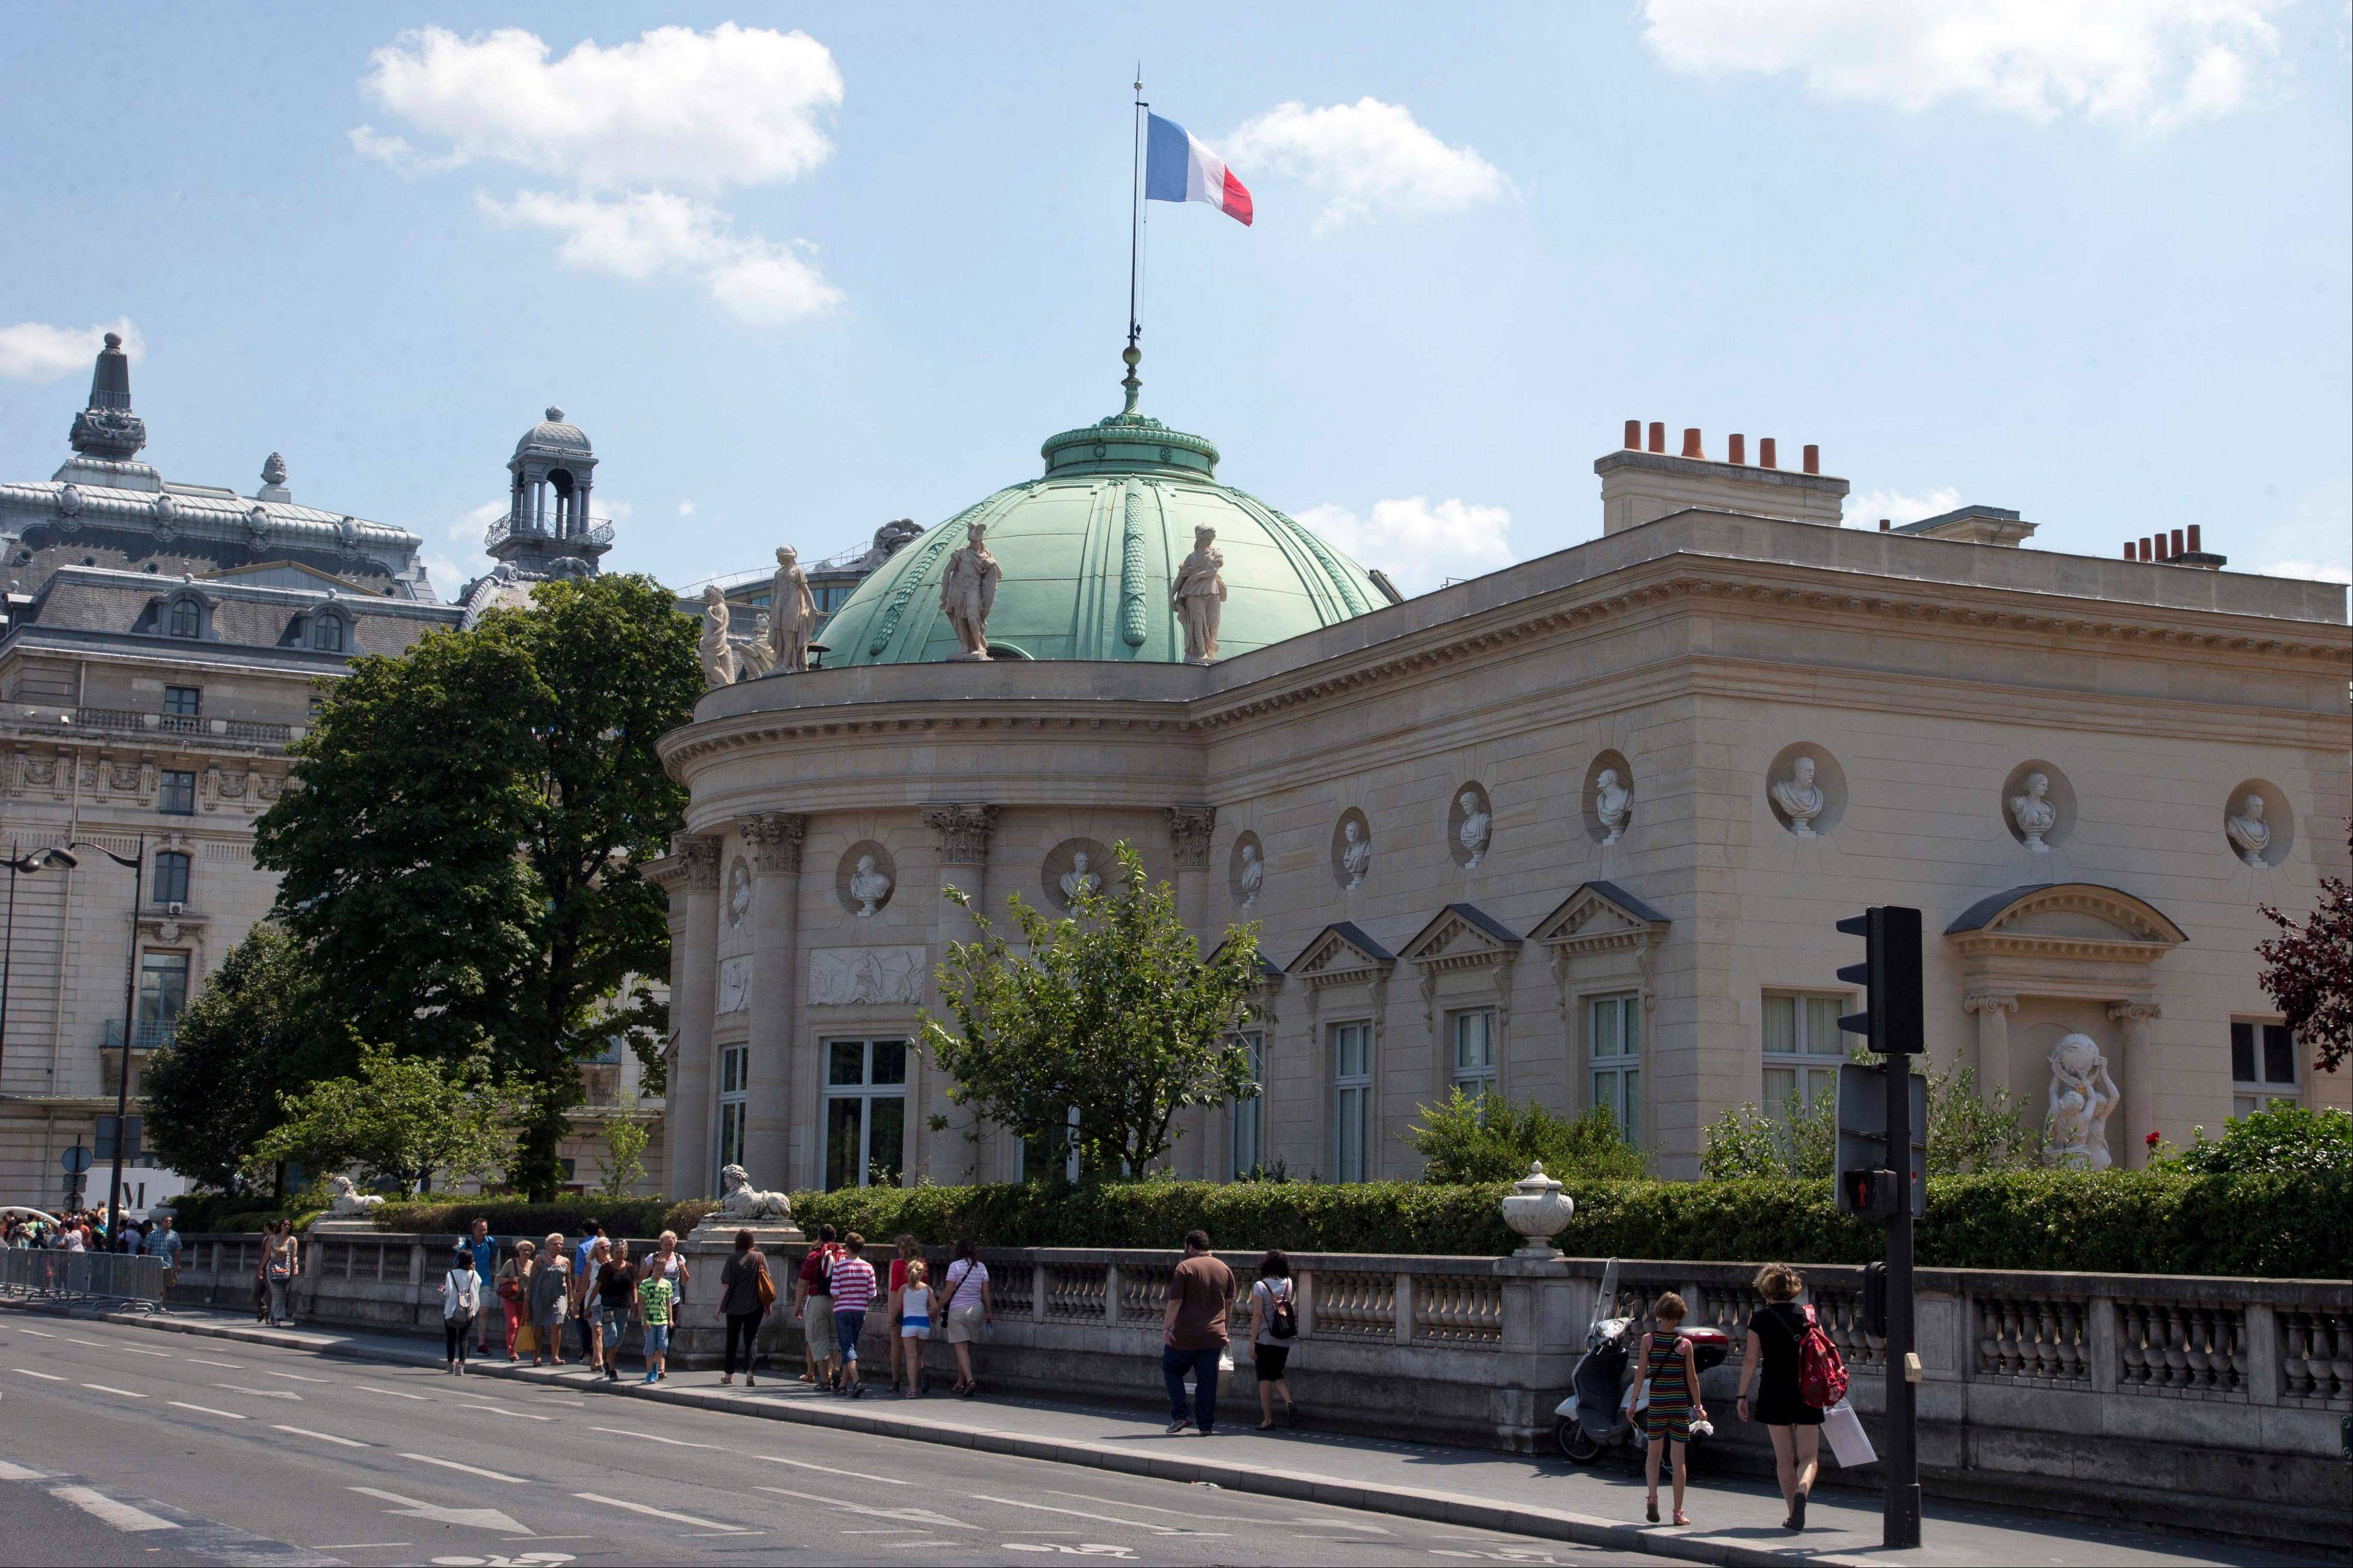 People walk in front of Legion of Honour building next to MusÈe d'Orsay during a guided tour in Paris. The building was the inspiration for Thomas Jefferson's Monticello house in Charlottesville, Va.